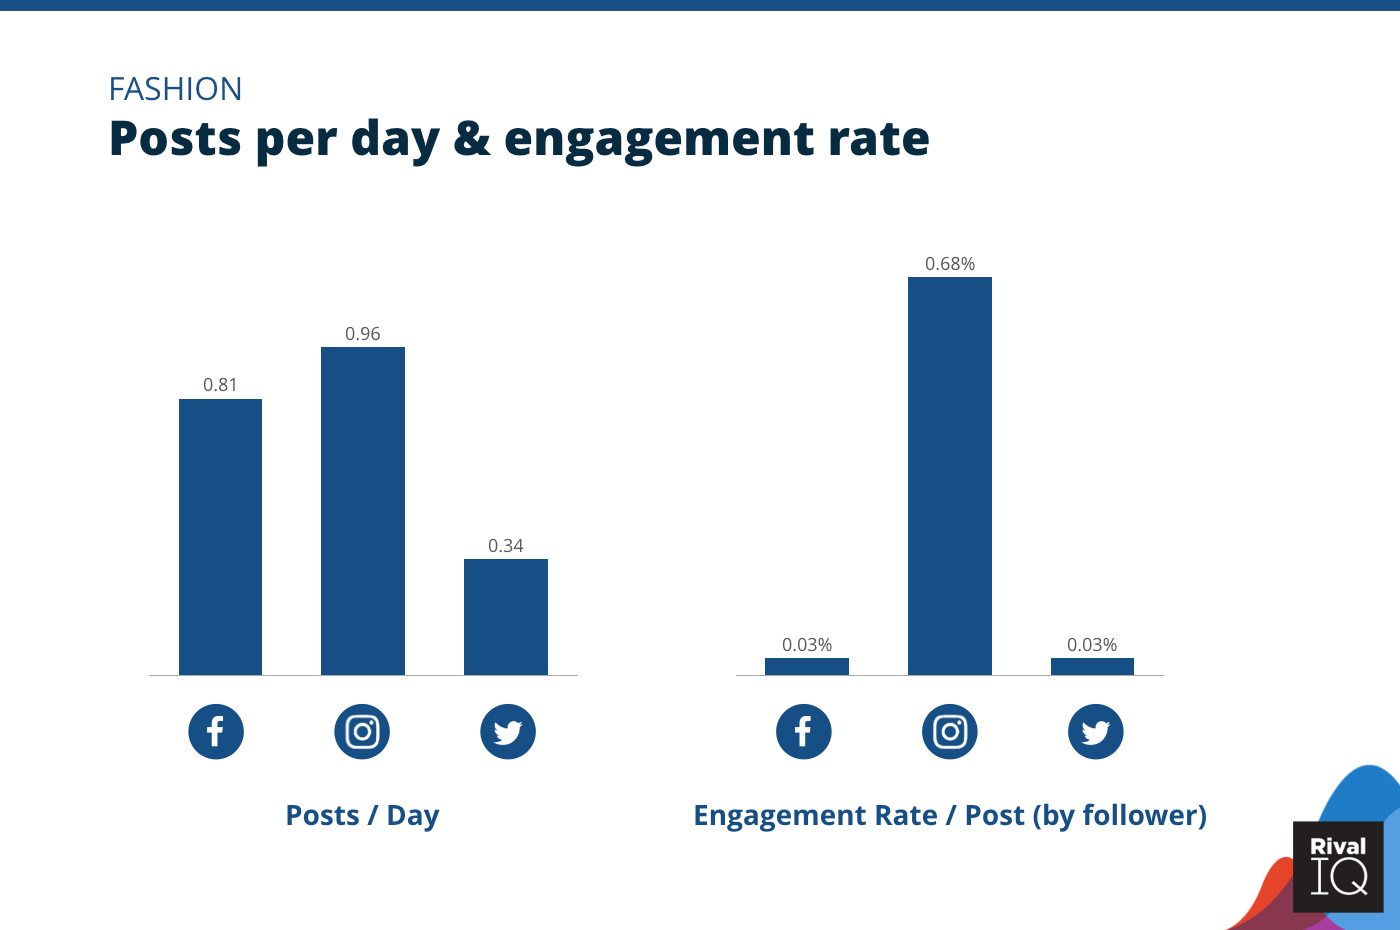 Chart of Posts per day and engagement rate per post across all channels, Fashion